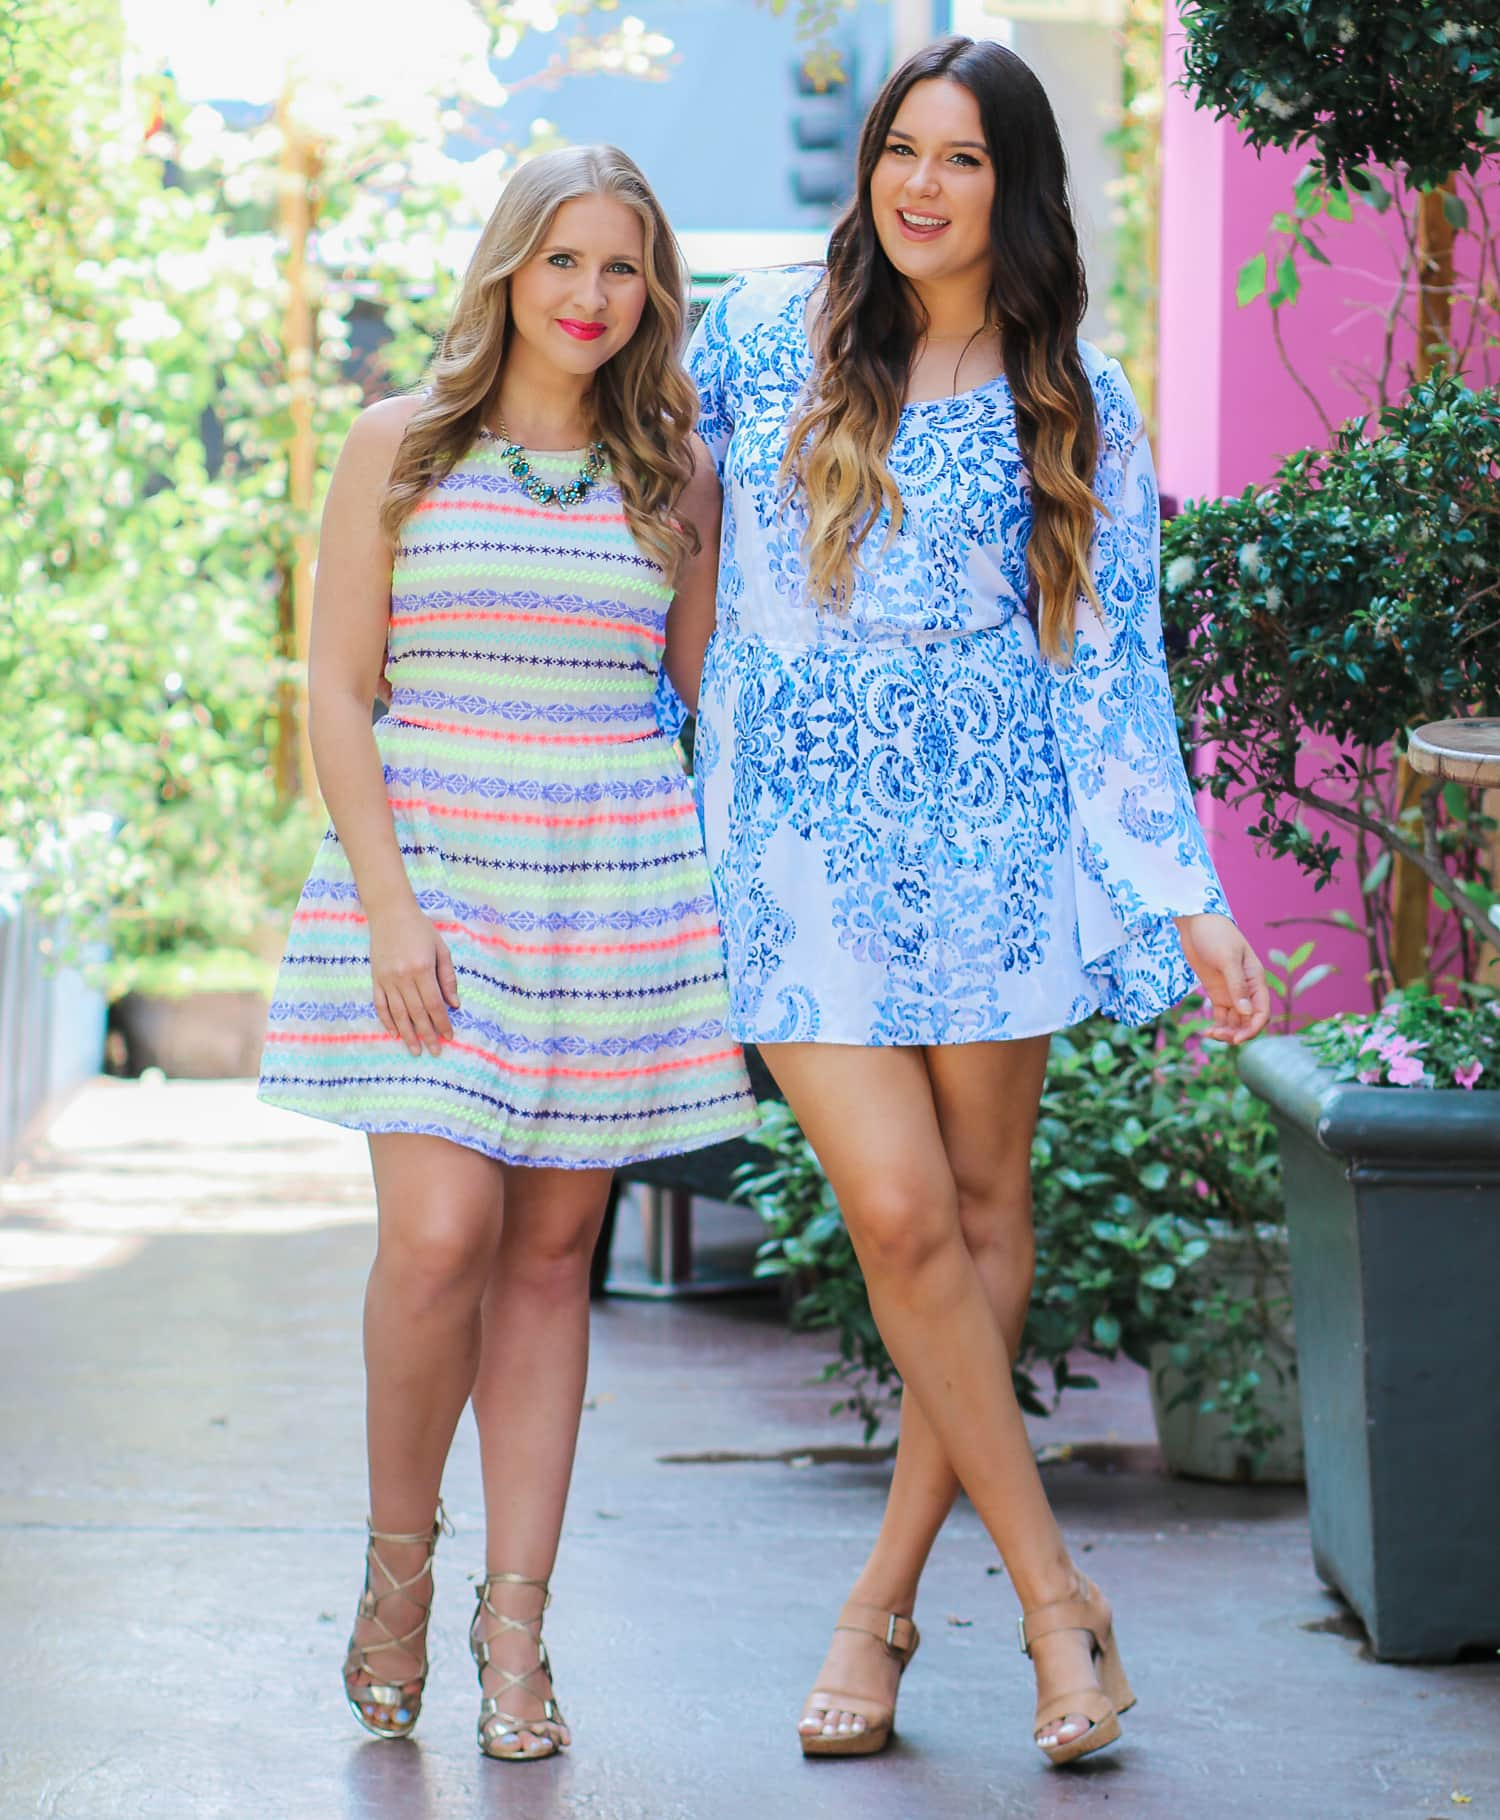 Ashley Brooke Nicholas and Mash Elle - Florida fashion bloggers